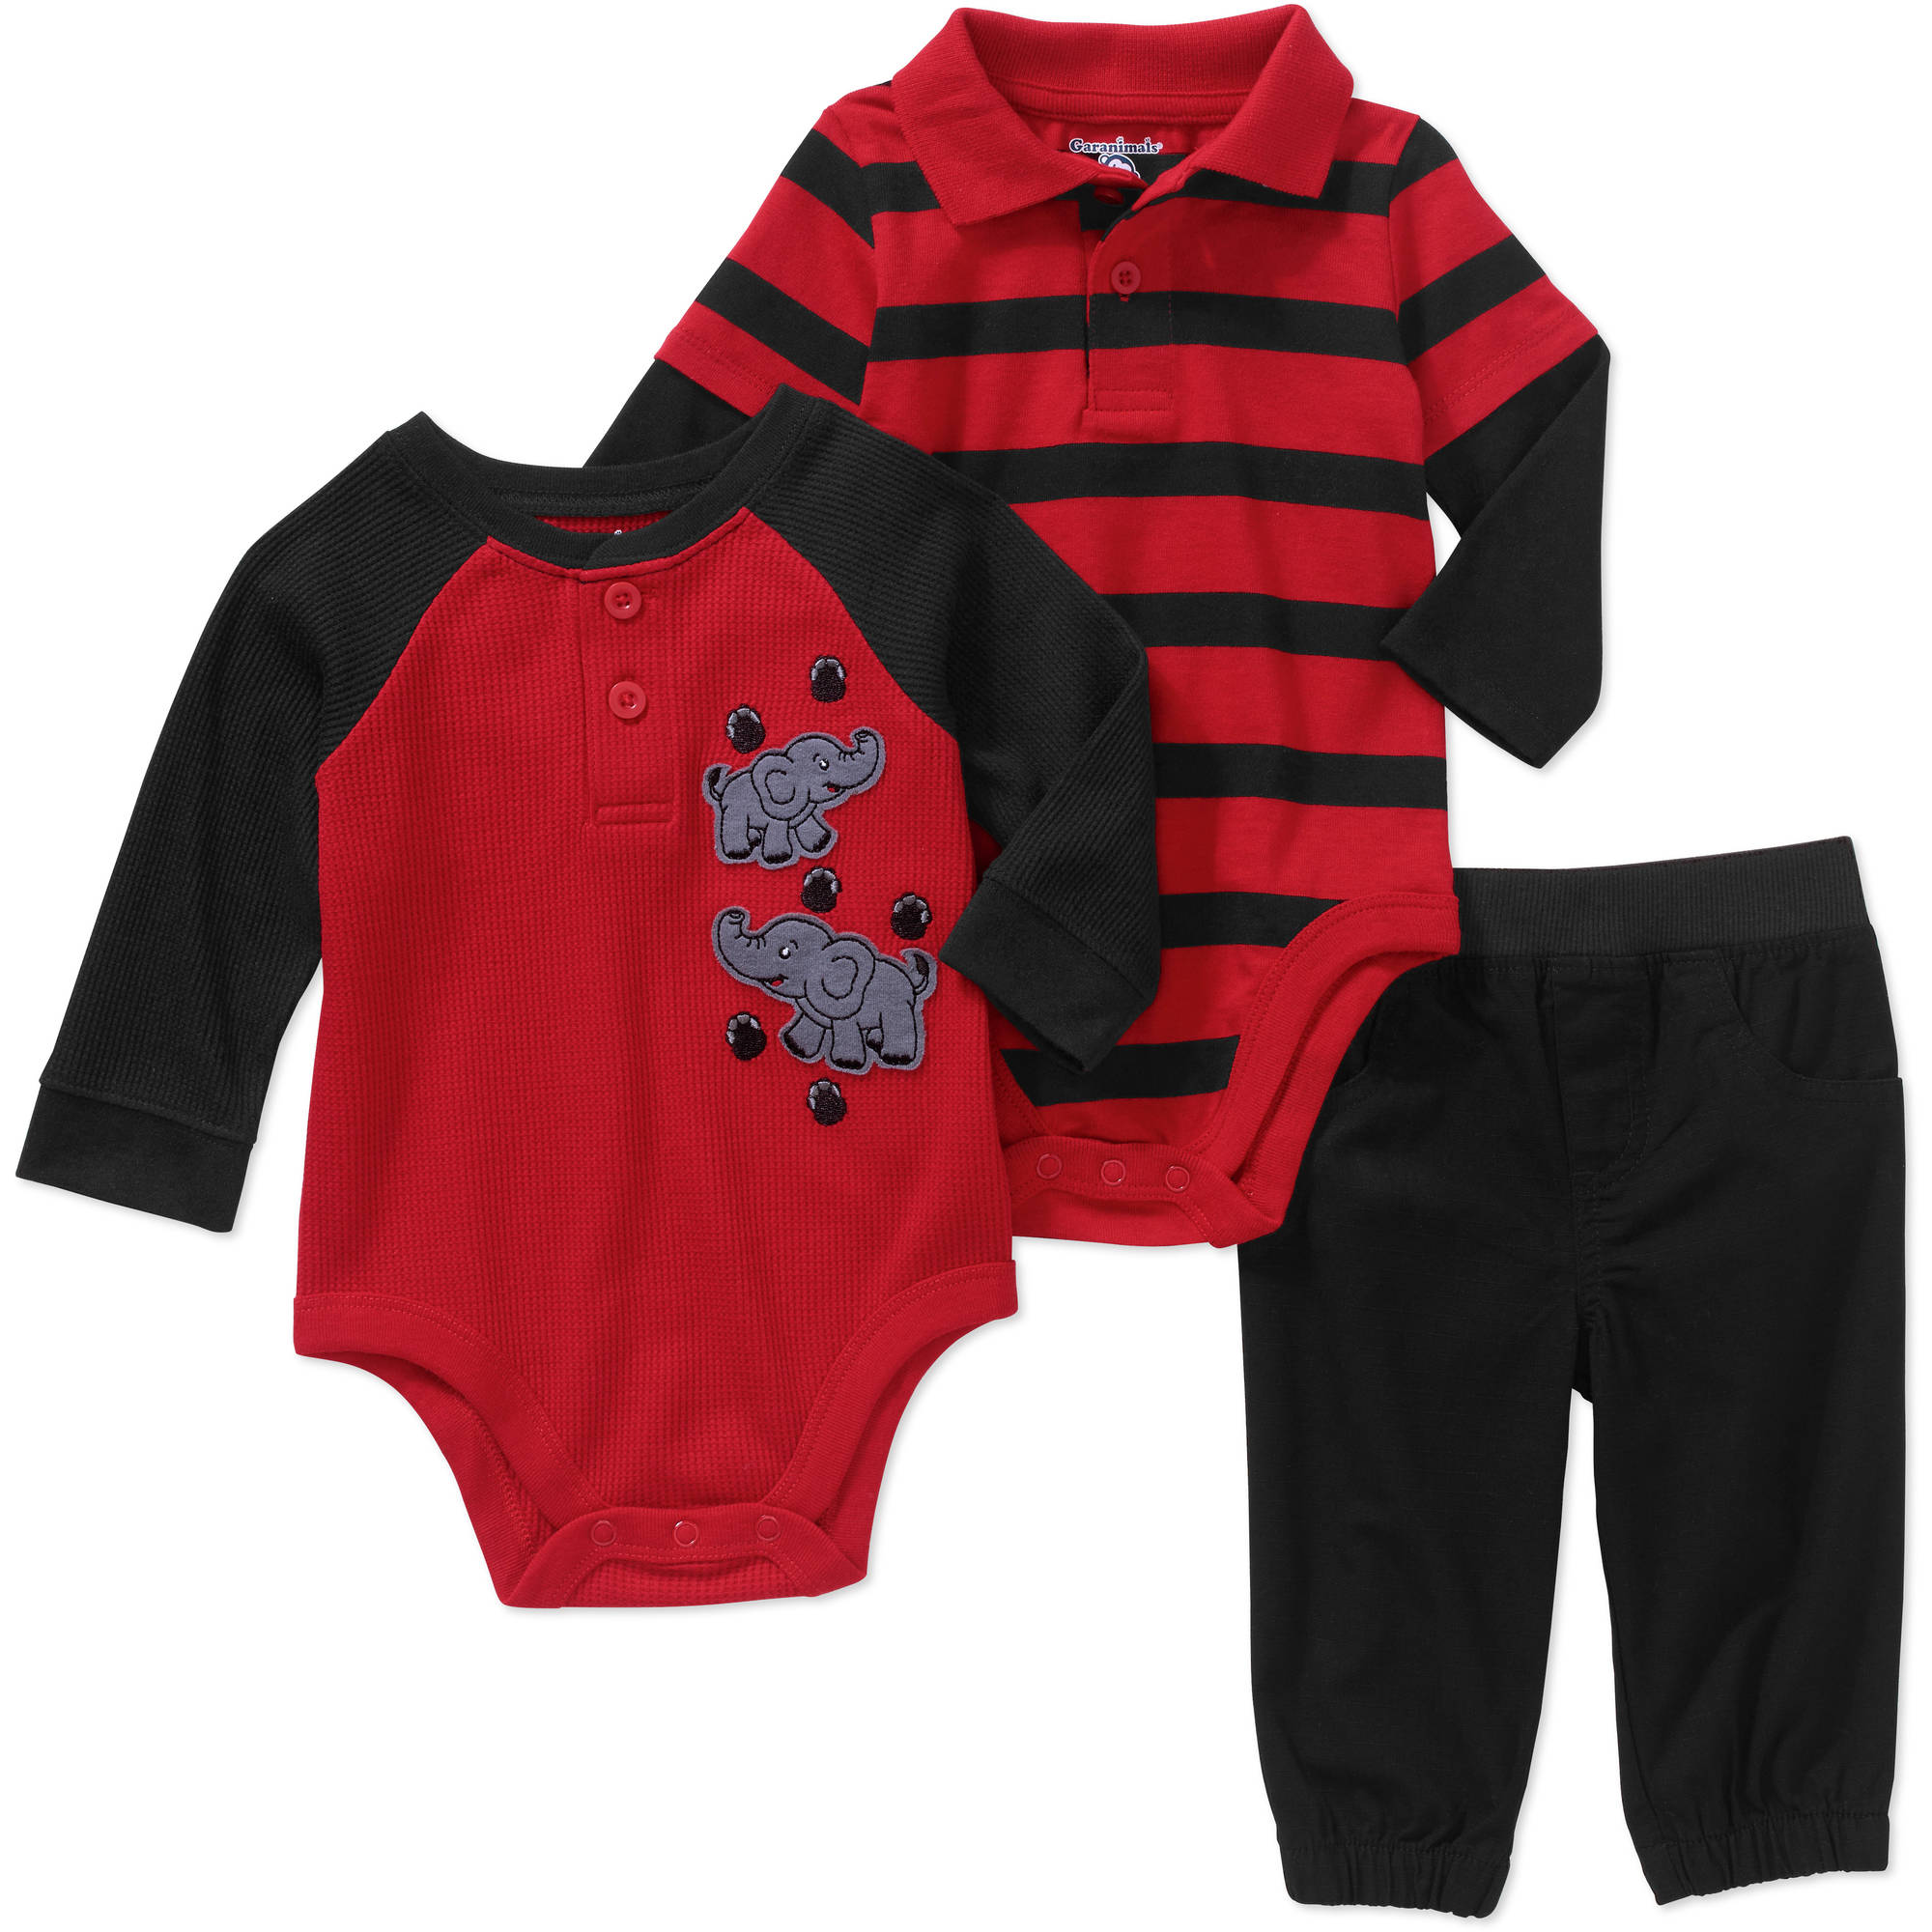 Garanimals Newborn Baby Boys' Hangdown Stripe Polo Bodysuit, Thermal Raglan Graphic Bodysuit and Woven Pants 3-Piece Outfit Set